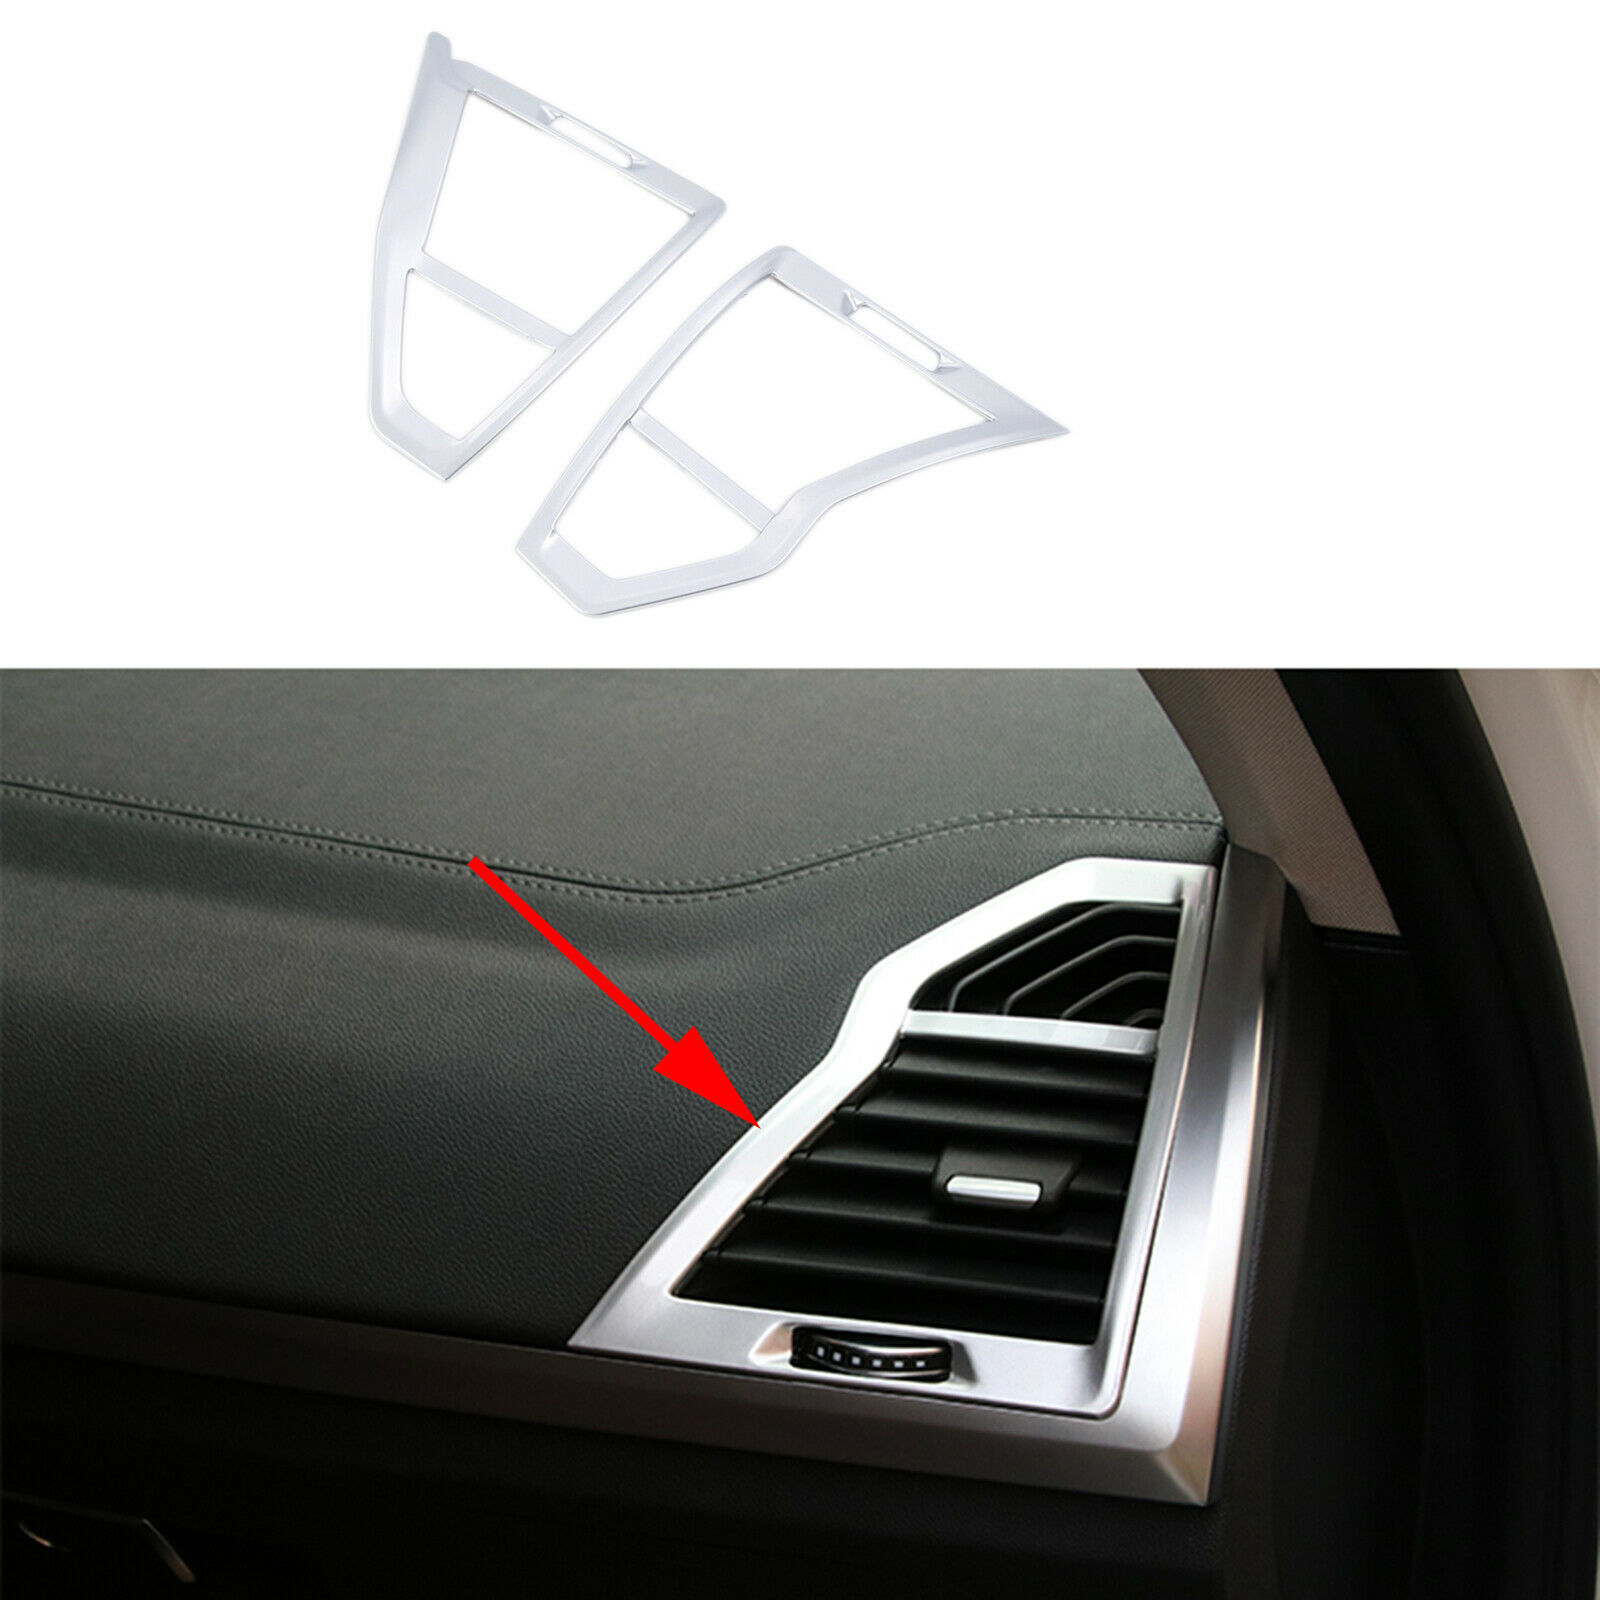 Matte Chrome Front Side Door Air Conditioning Outlet Vent Cover Trim Fit For <font><b>BMW</b></font> <font><b>X3</b></font> <font><b>G01</b></font> <font><b>2018</b></font> 2019 Interior Accessories image